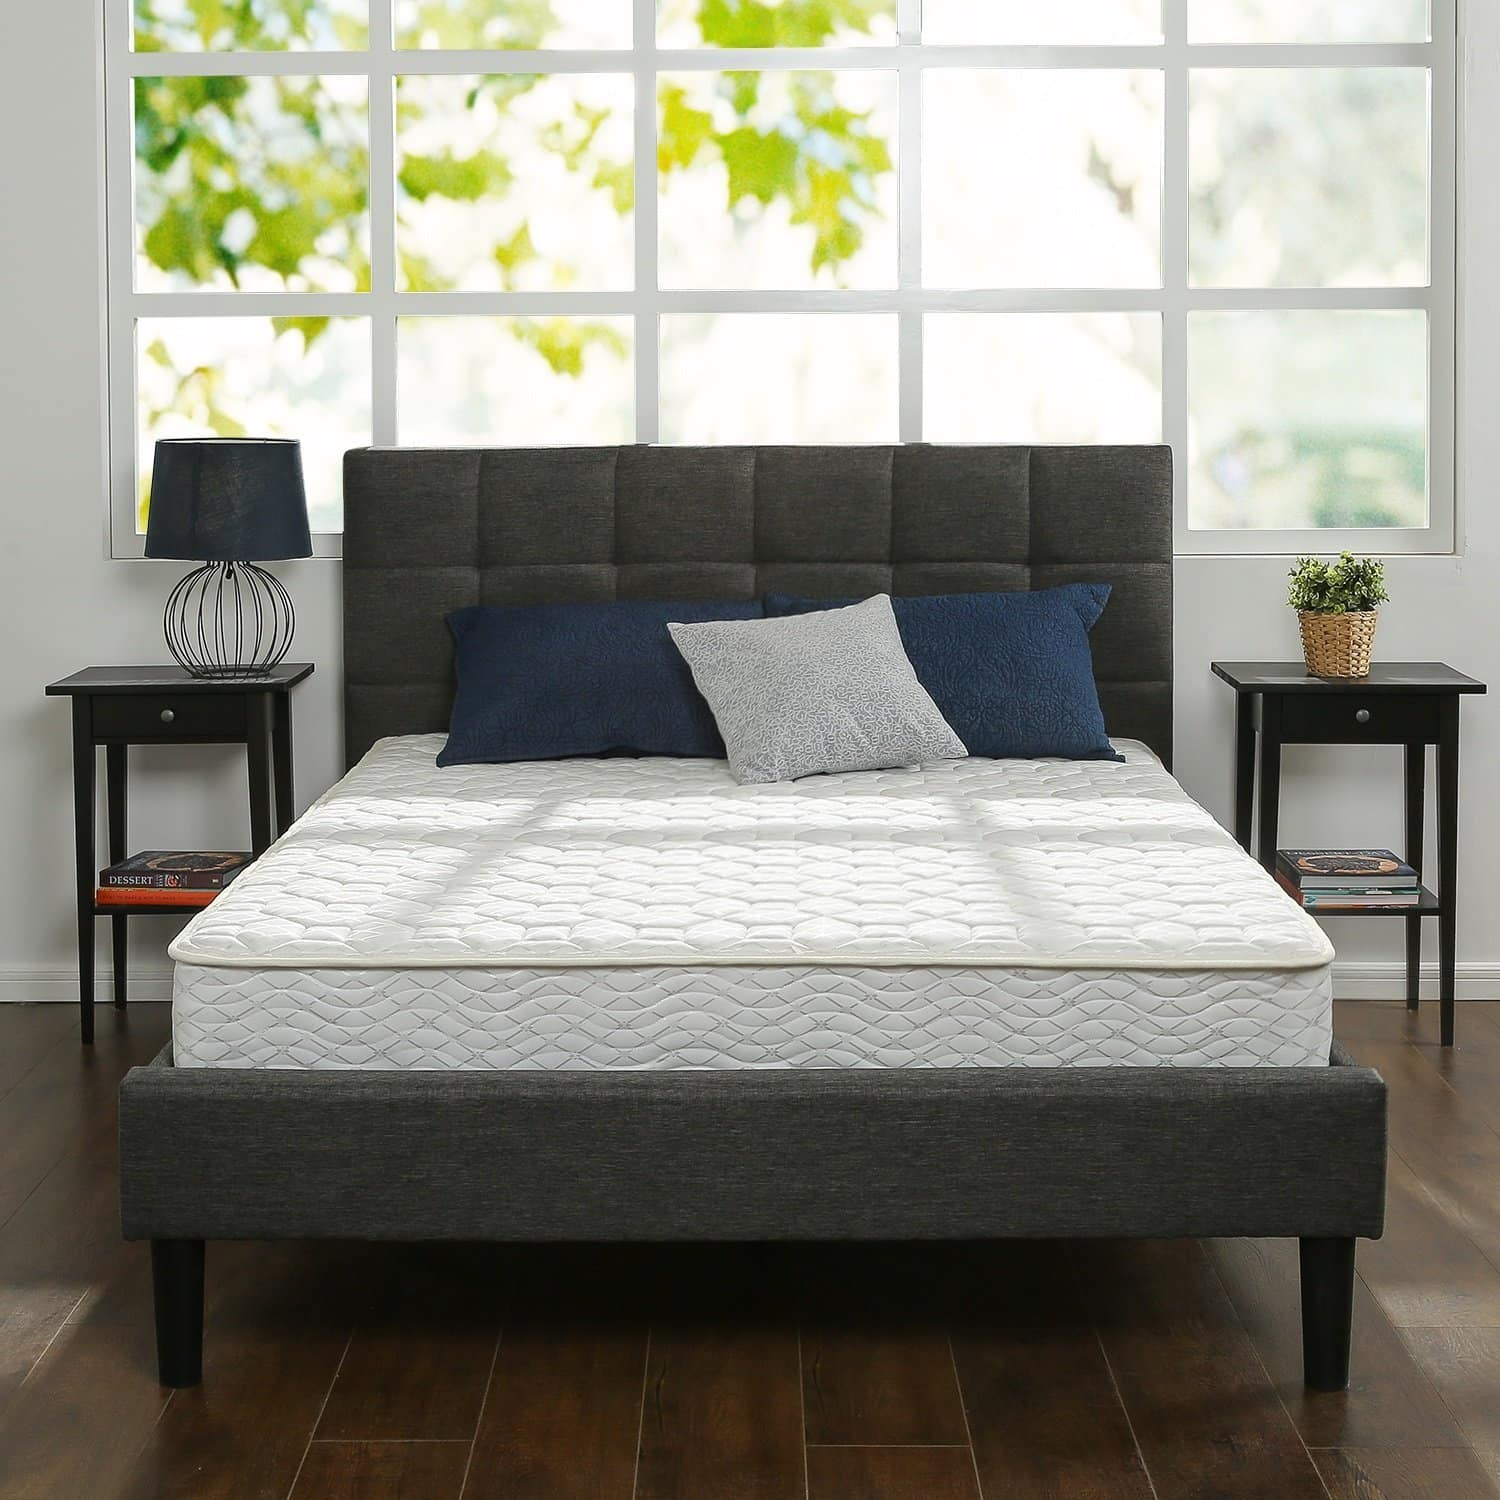 "Zinus 8"" Hybrid Green Tea Foam and Spring Mattress (California King) $93.79 + Free Shipping"